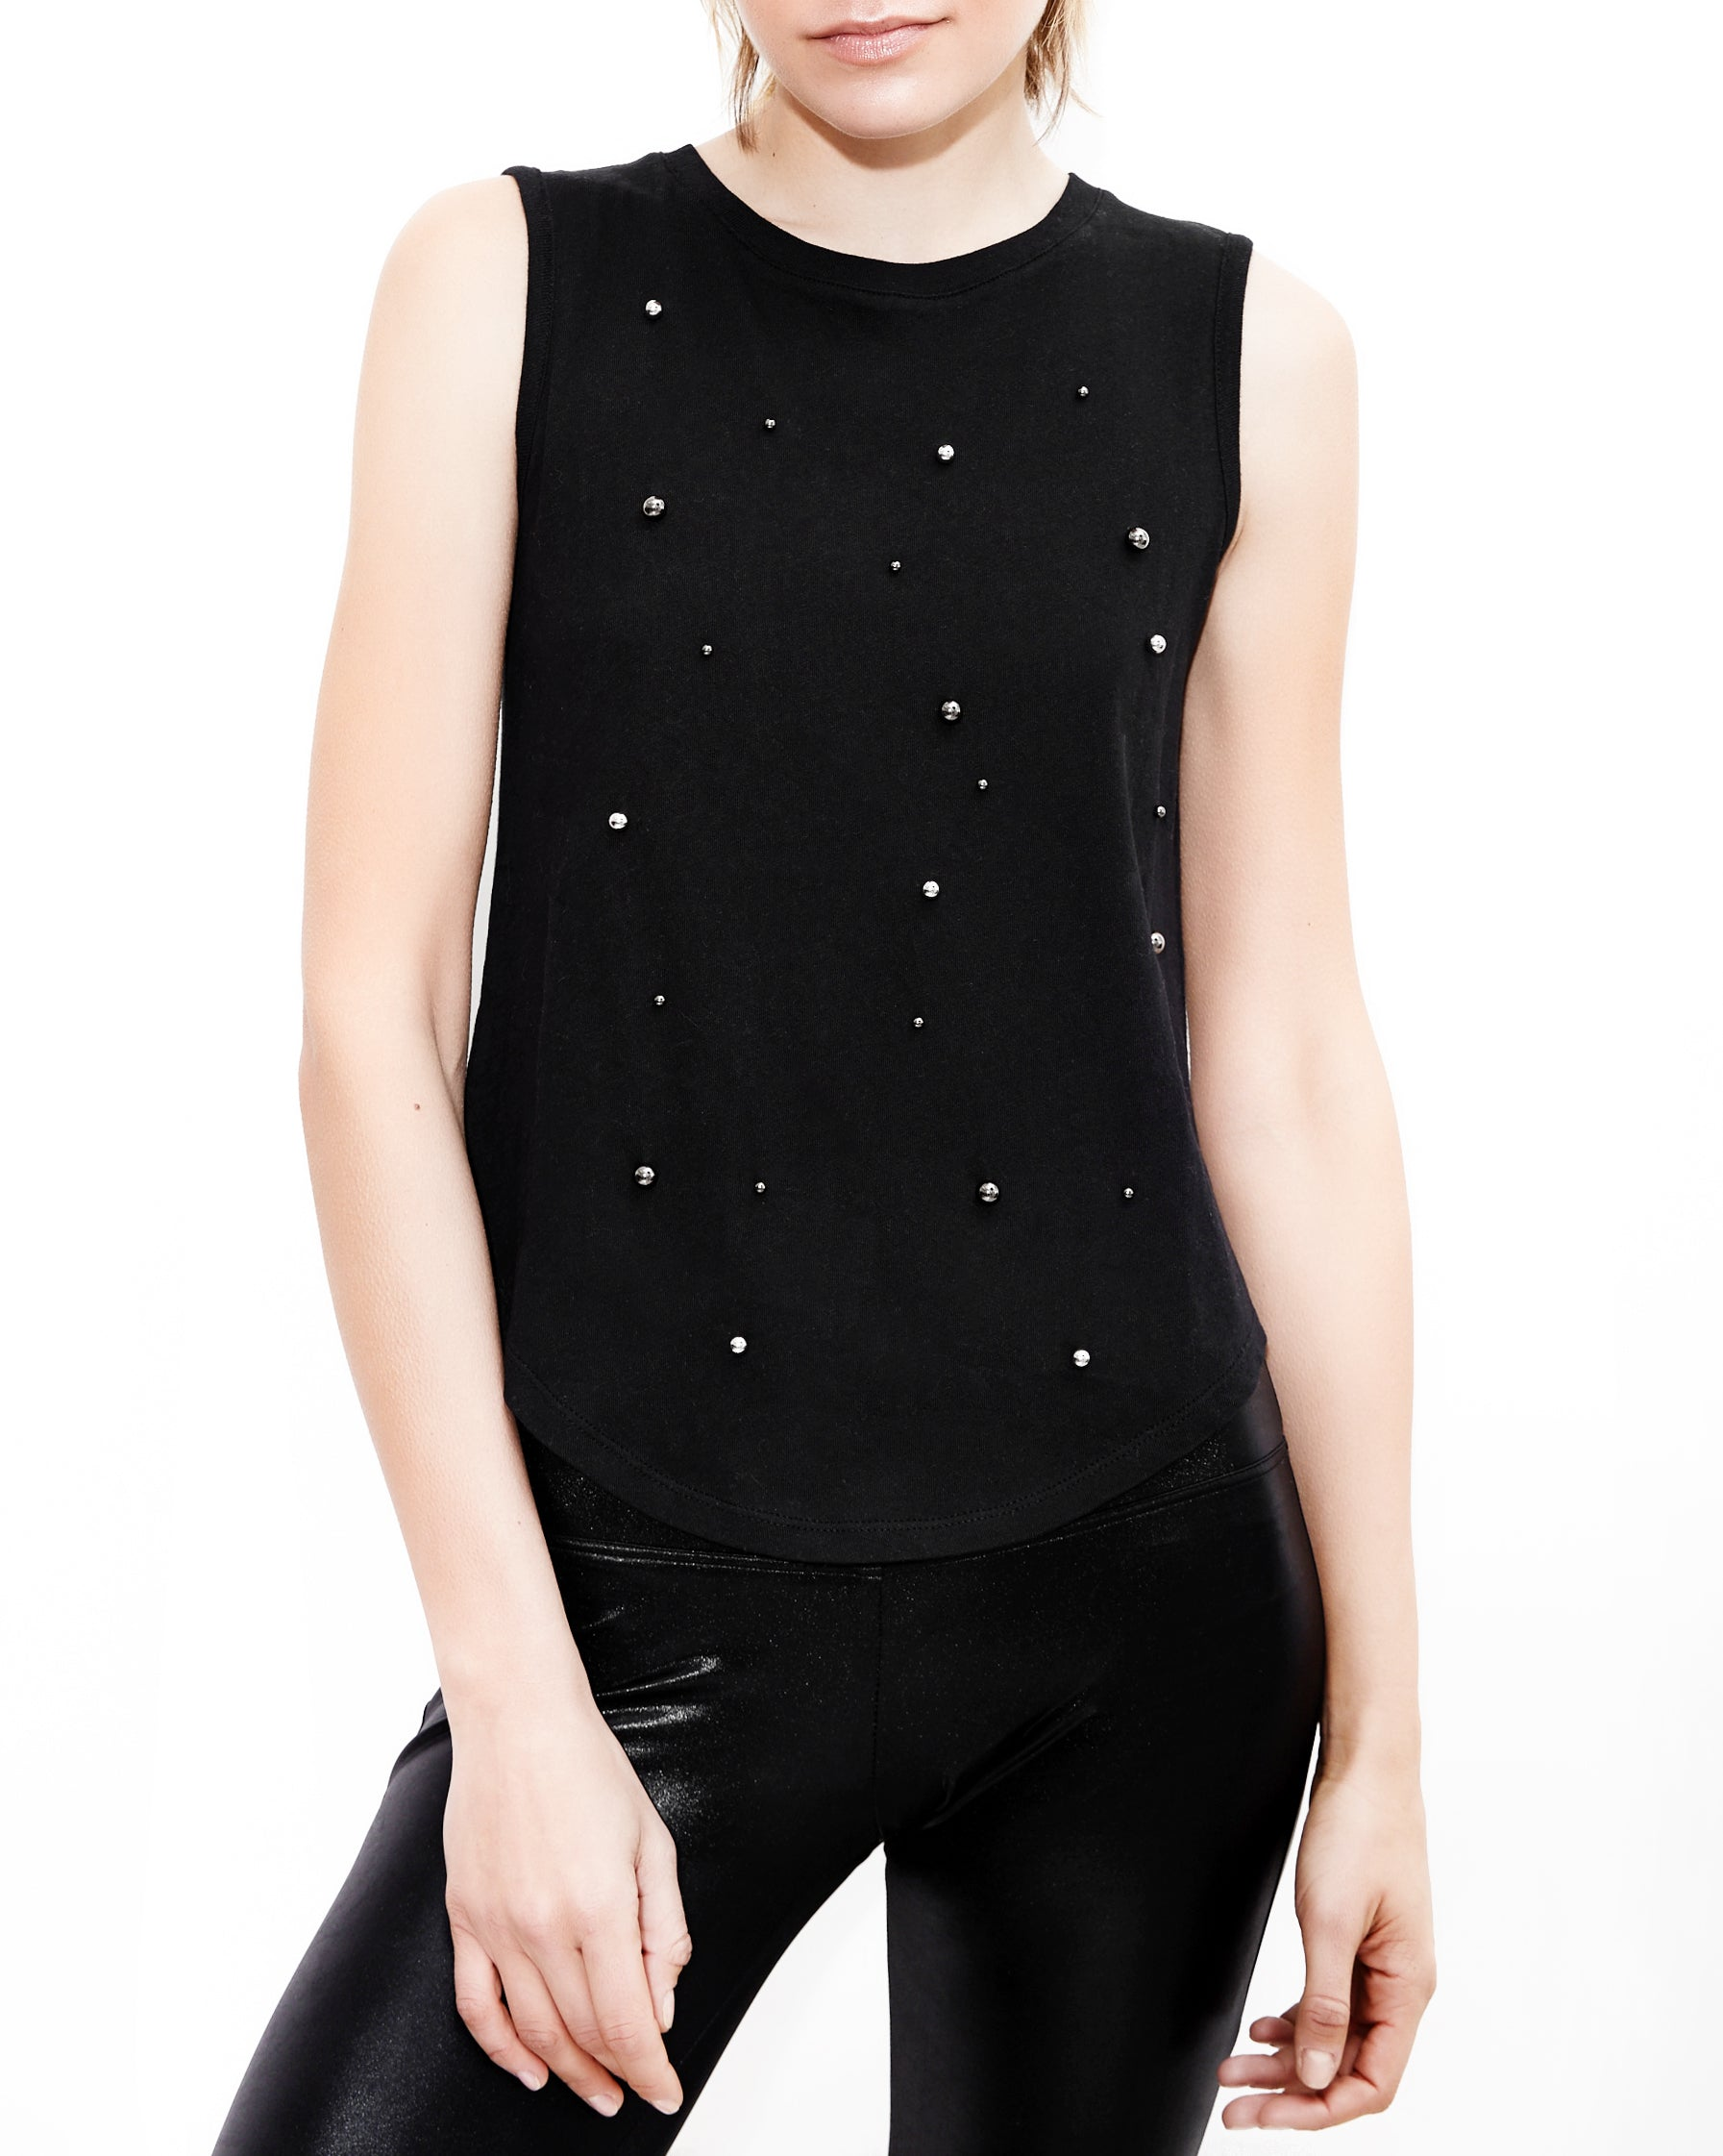 Daphne Pearls Black Top. Generation Love. NYC Modern Women's Clothing